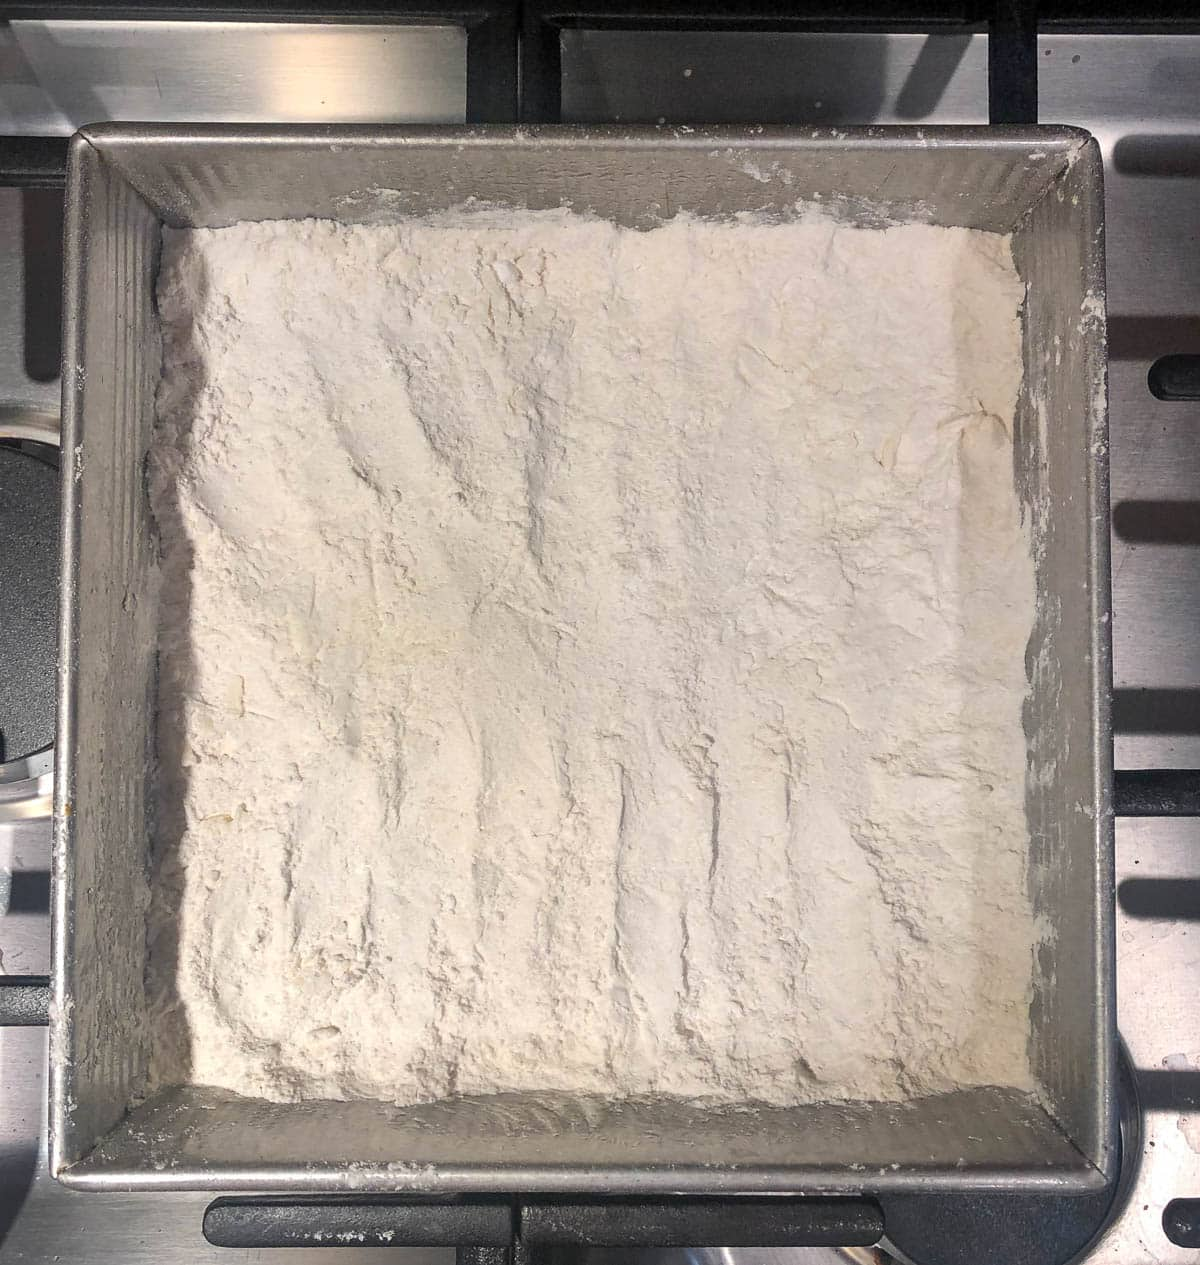 flour and butter base ready for baking